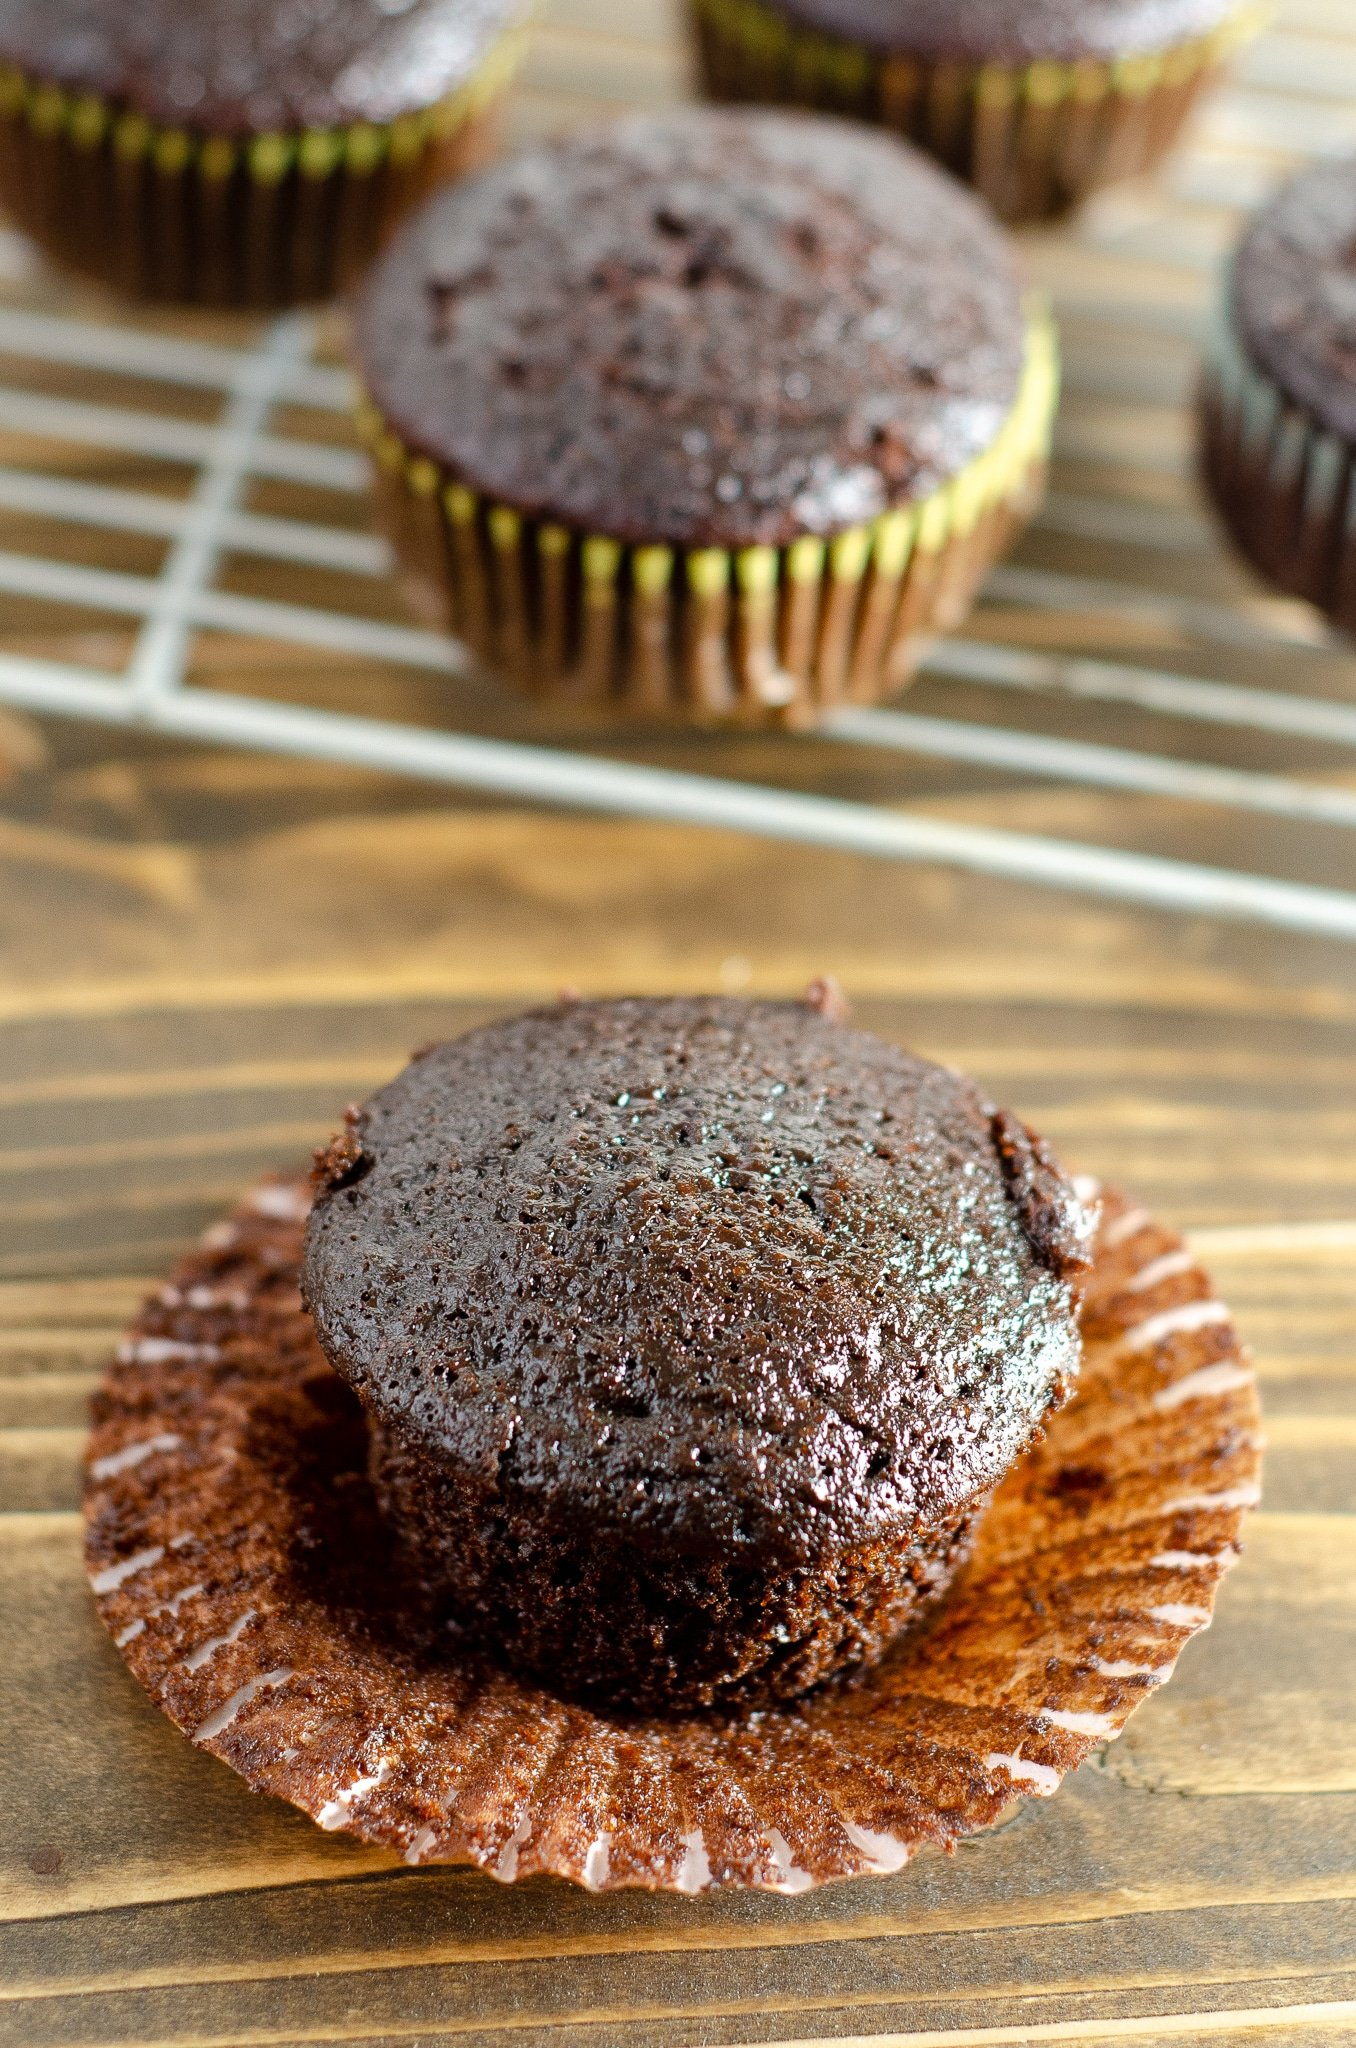 Chocolate Cupcake Table. Sink your teeth into a childhood favorite cupcake that is as easy to bake as it is to eat. My Chocolate cupcakes with Chocolate Buttercream frosting and marshmallow creme filling will make the kid in you cheer.